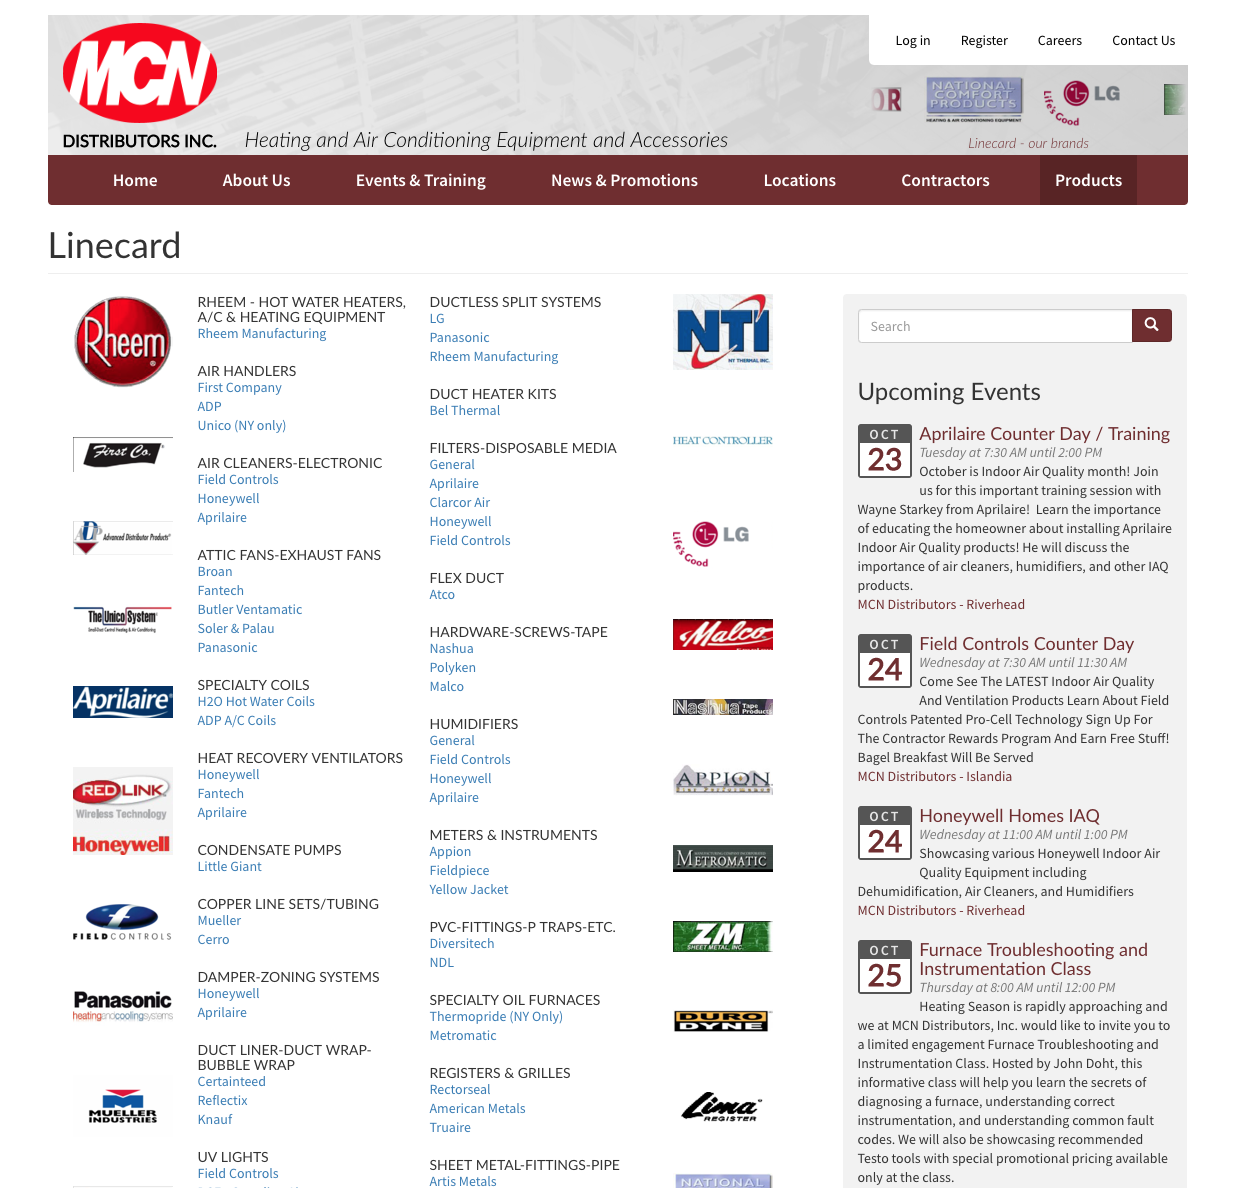 MCN Products